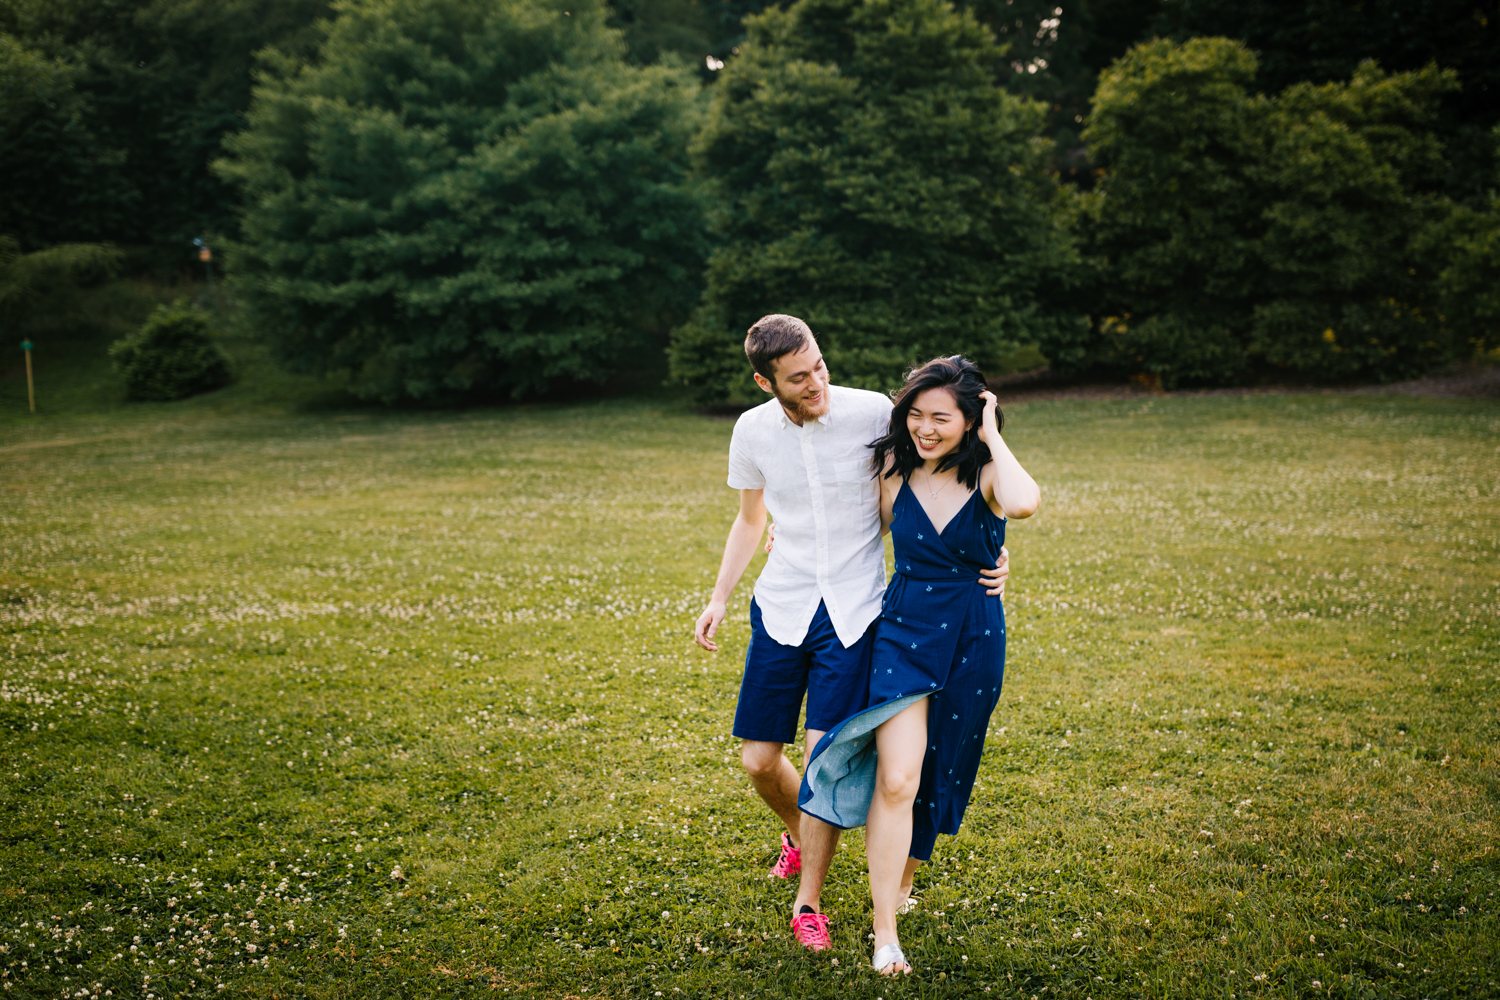 arnold-arboretum-harvard-boston-engagement-photographer-andrea-van-orsouw-photography-adventurous-natural-fun-massachusetts.jpg